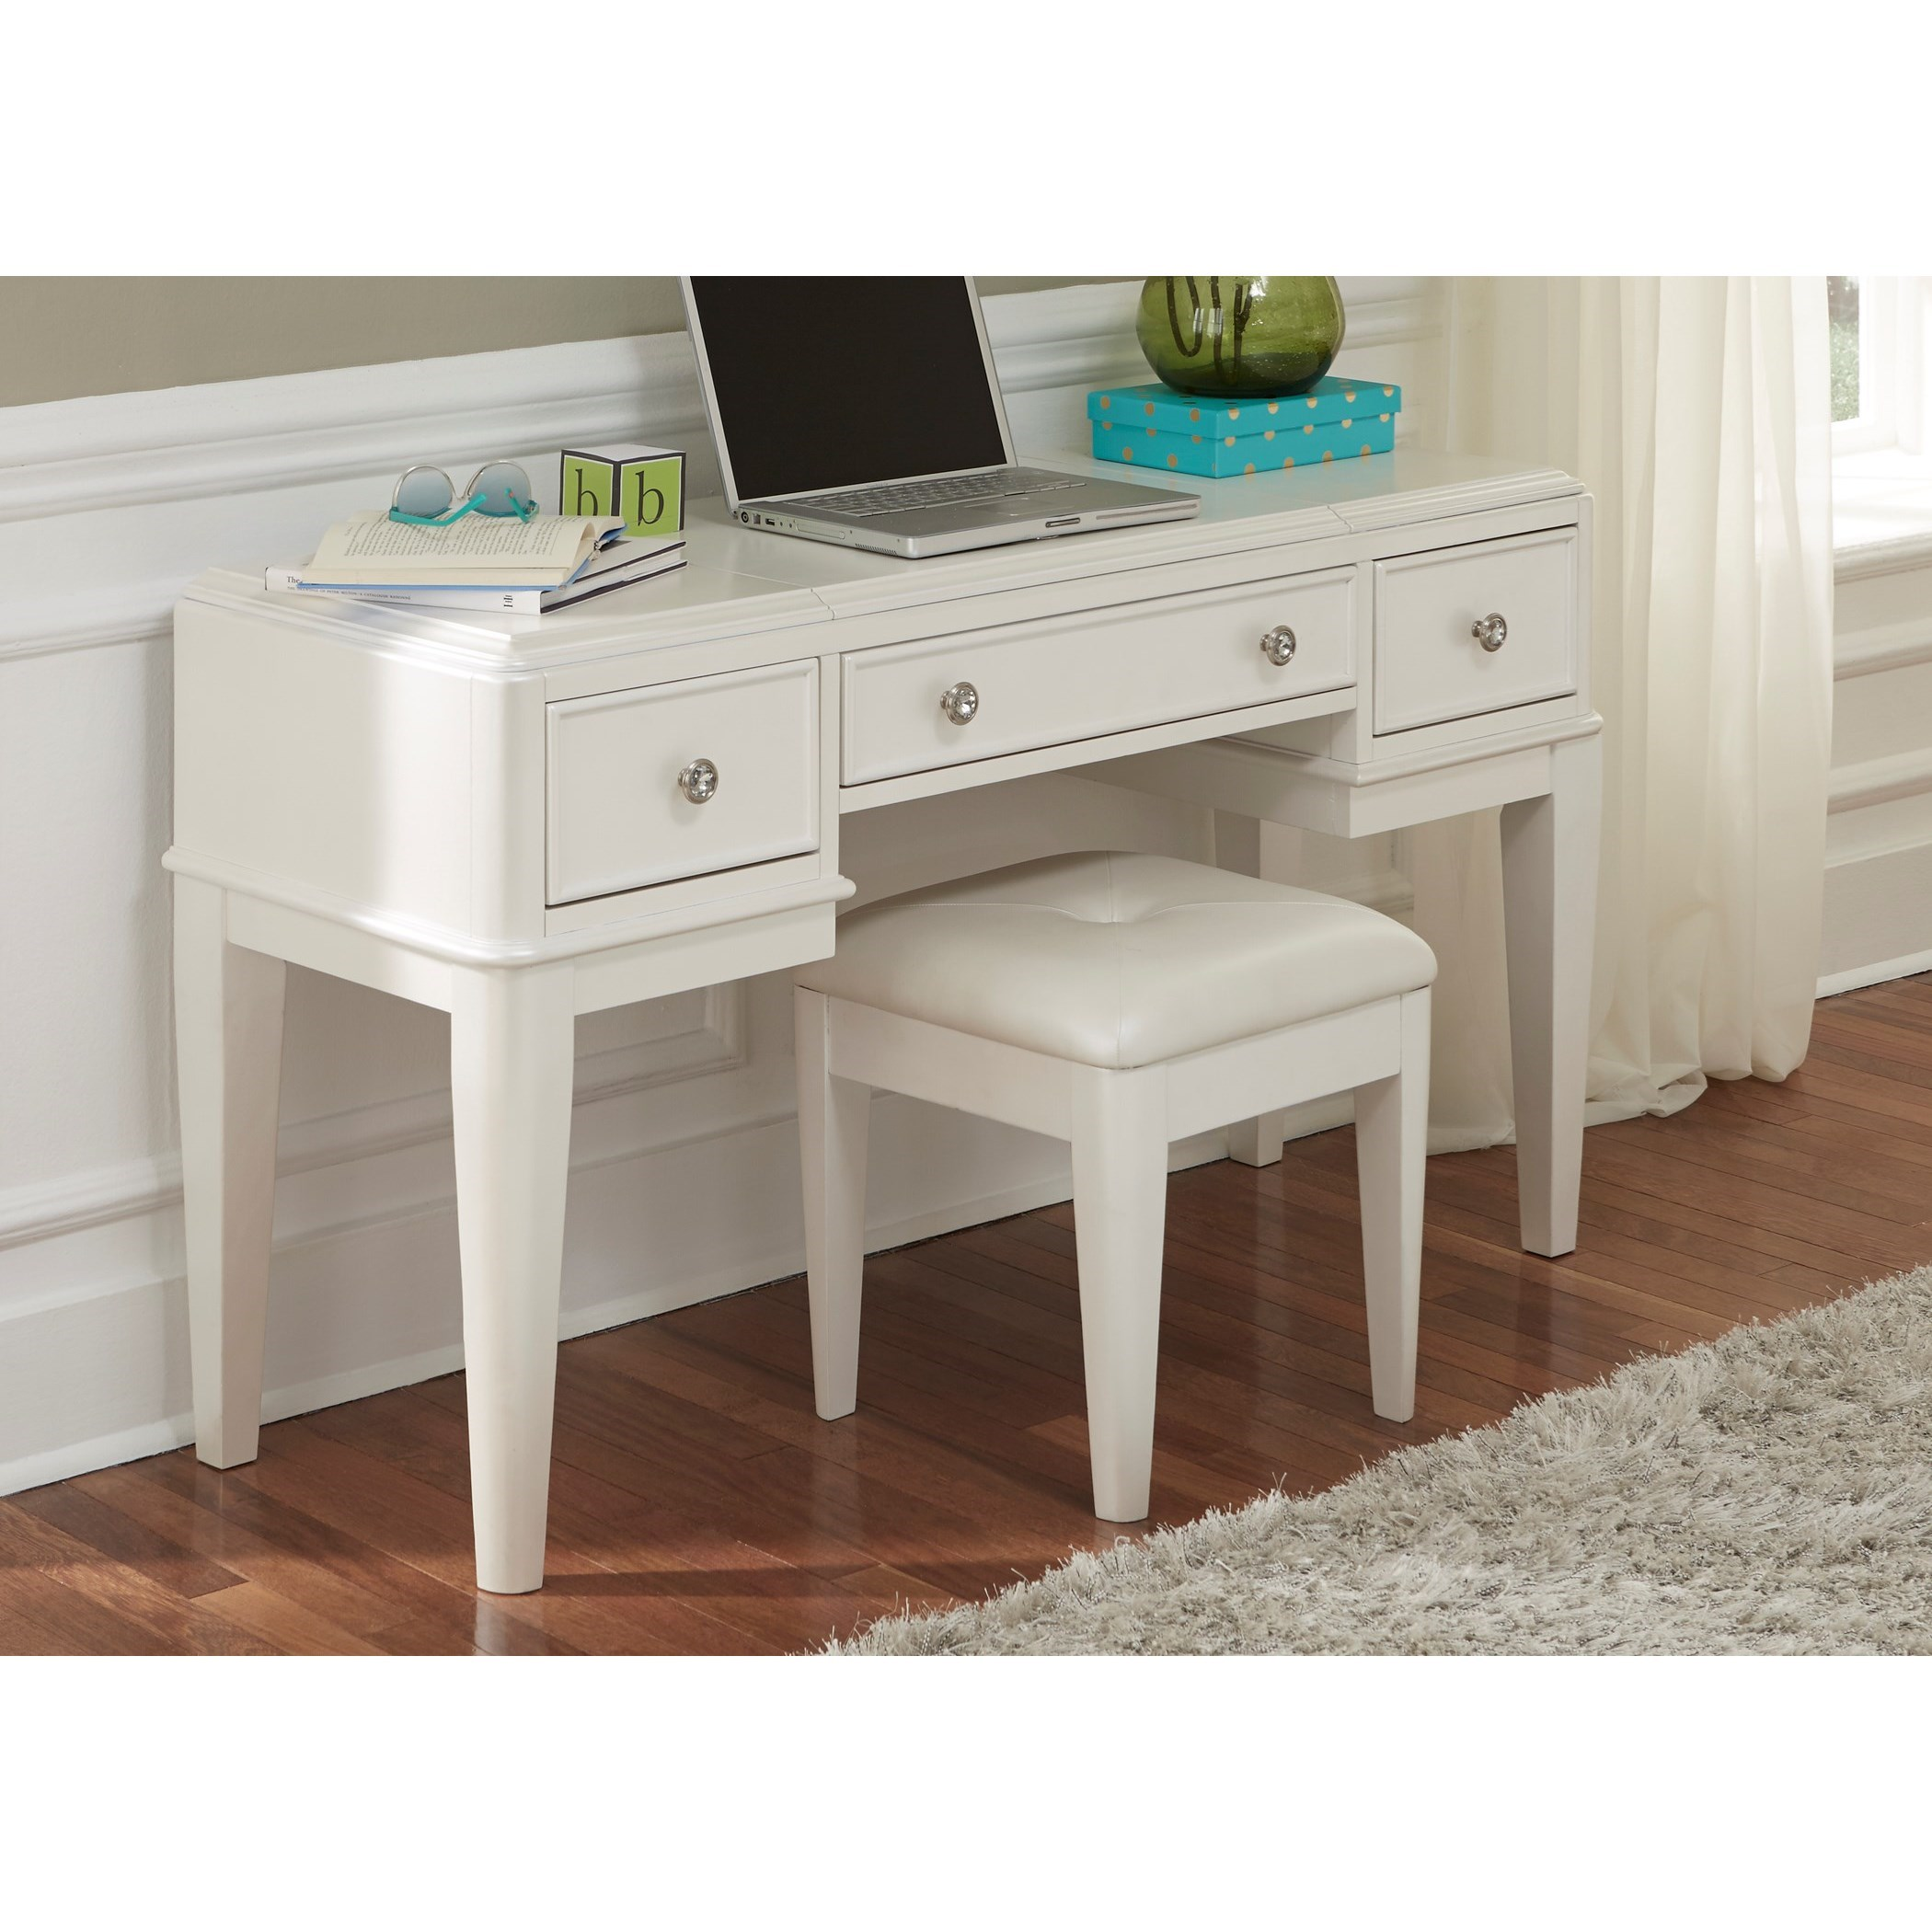 Liberty Furniture Stardust 710 Br48 Upholstered Vanity Bench Furniture And Appliancemart